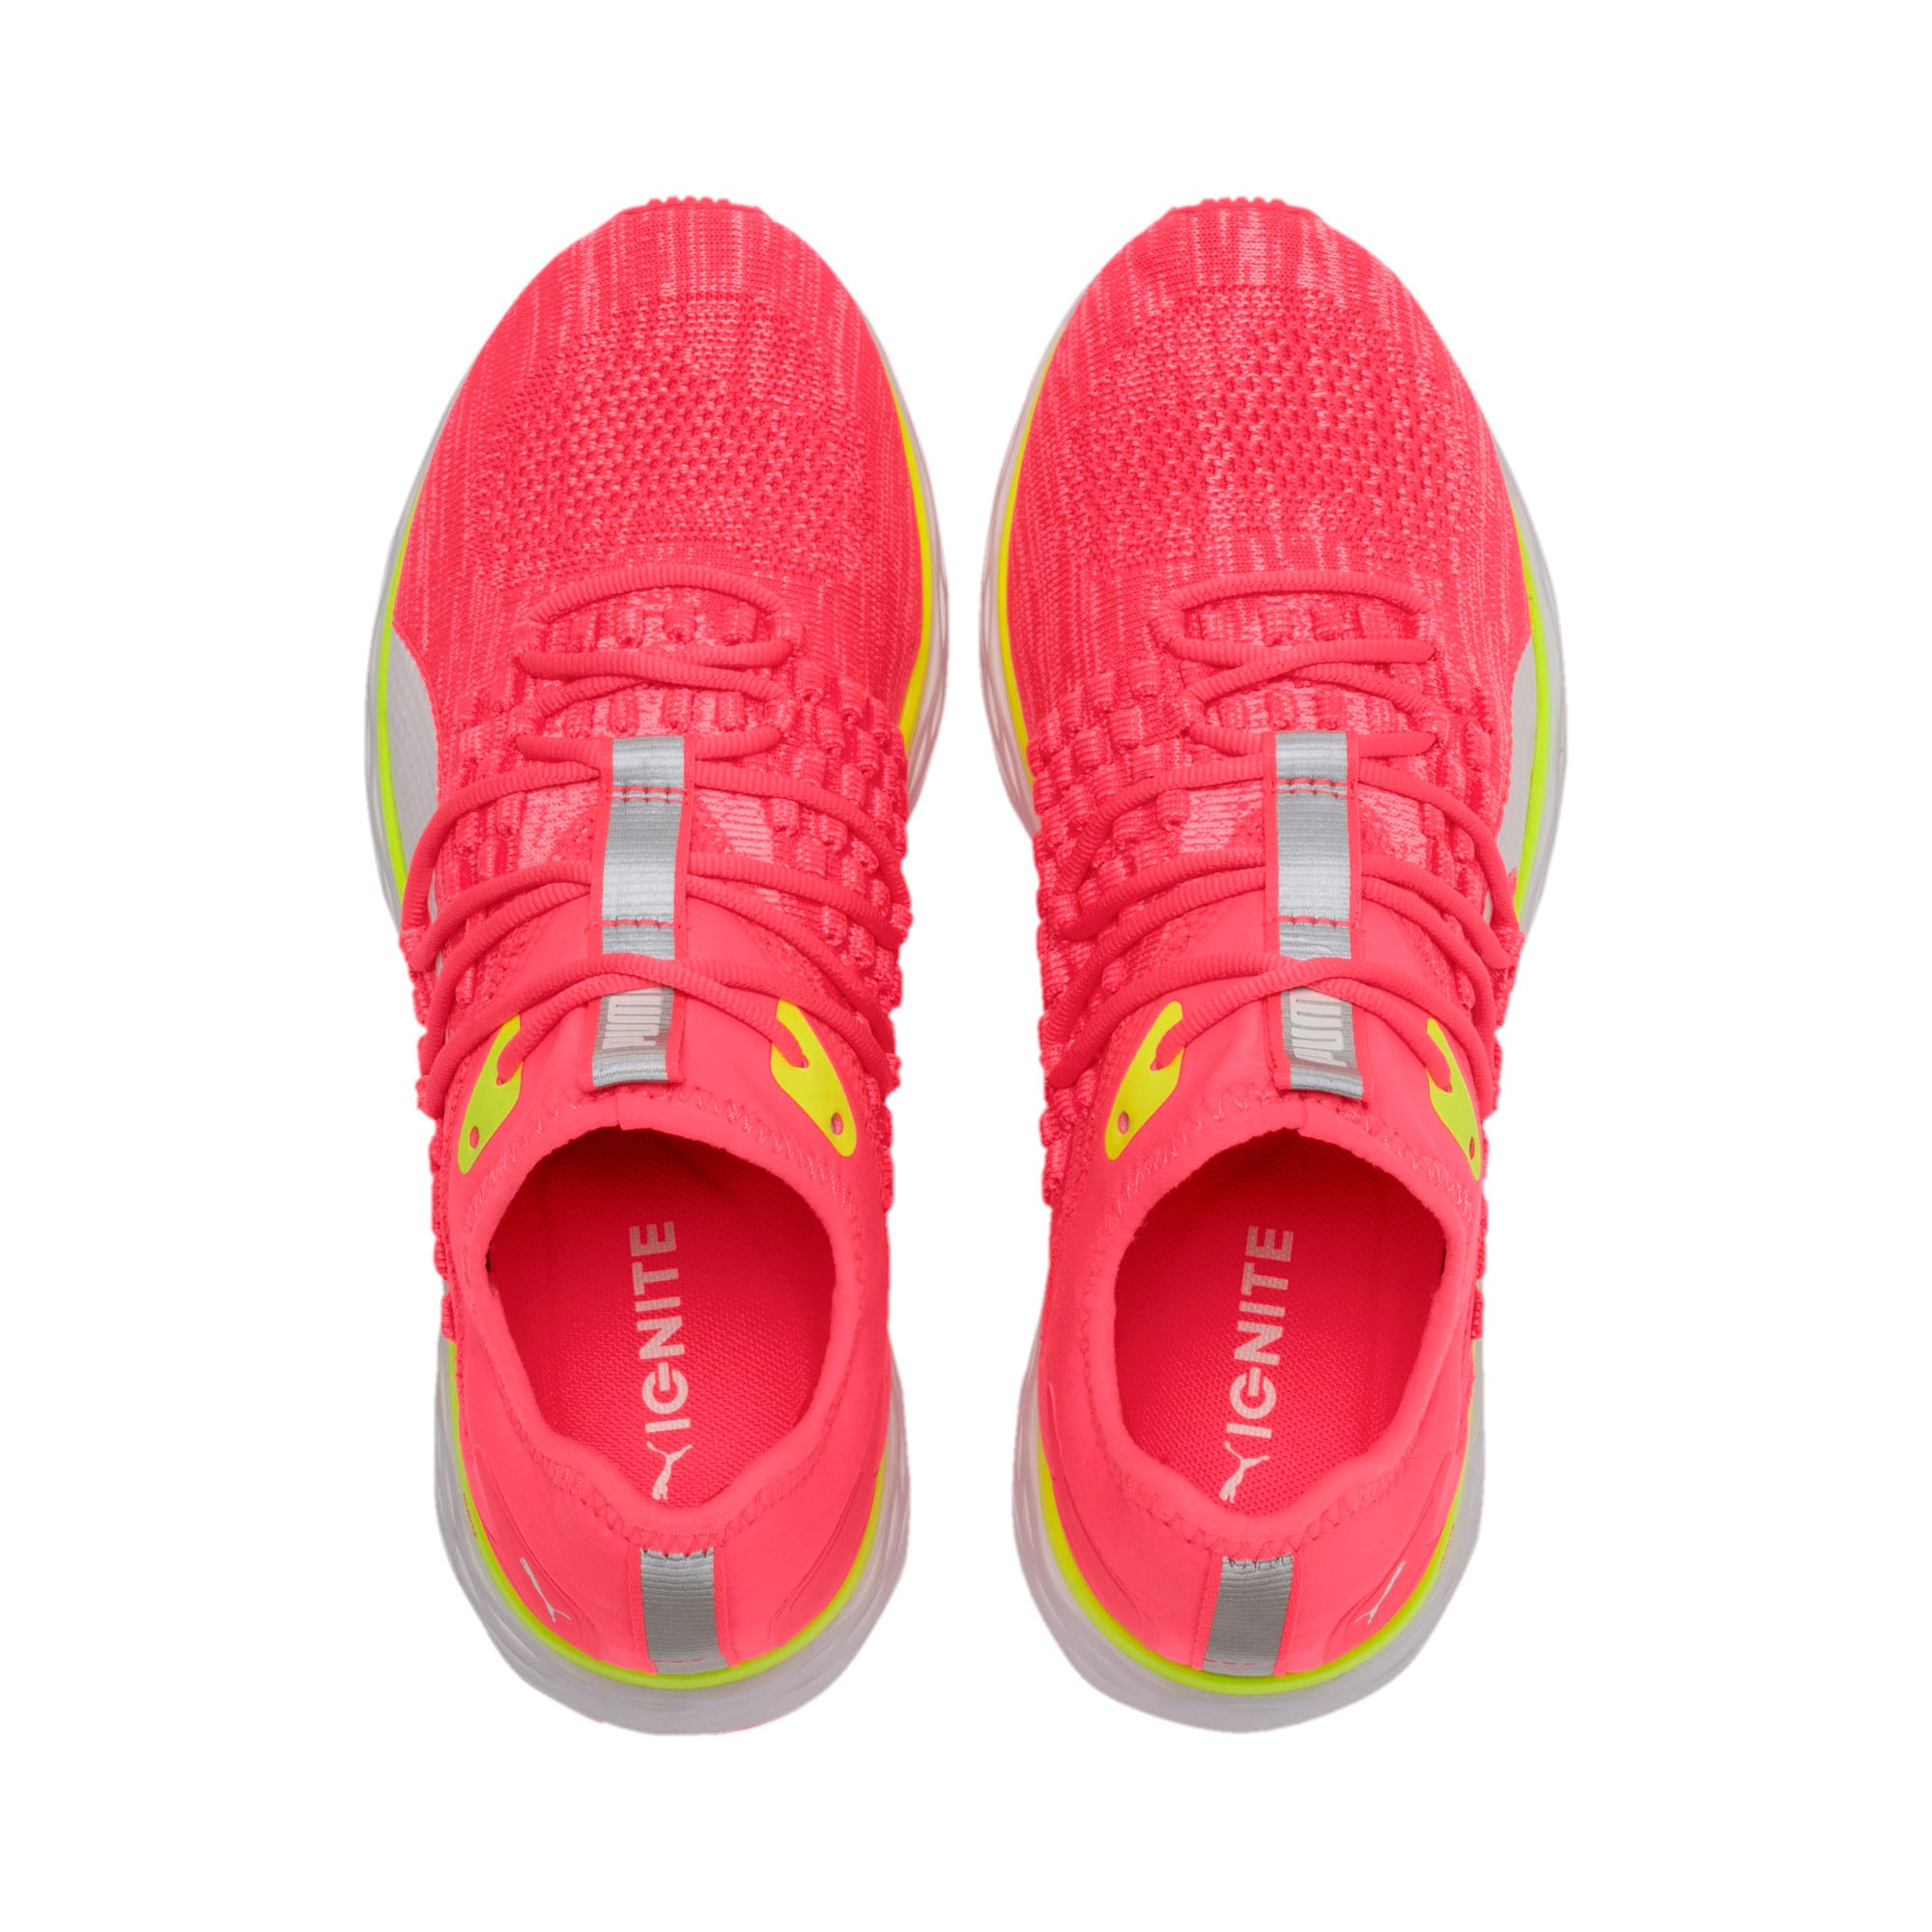 Thumbnail 7 of SPEED 600 FUSEFIT Women's Running Shoes, Pink Alert-Puma White, medium